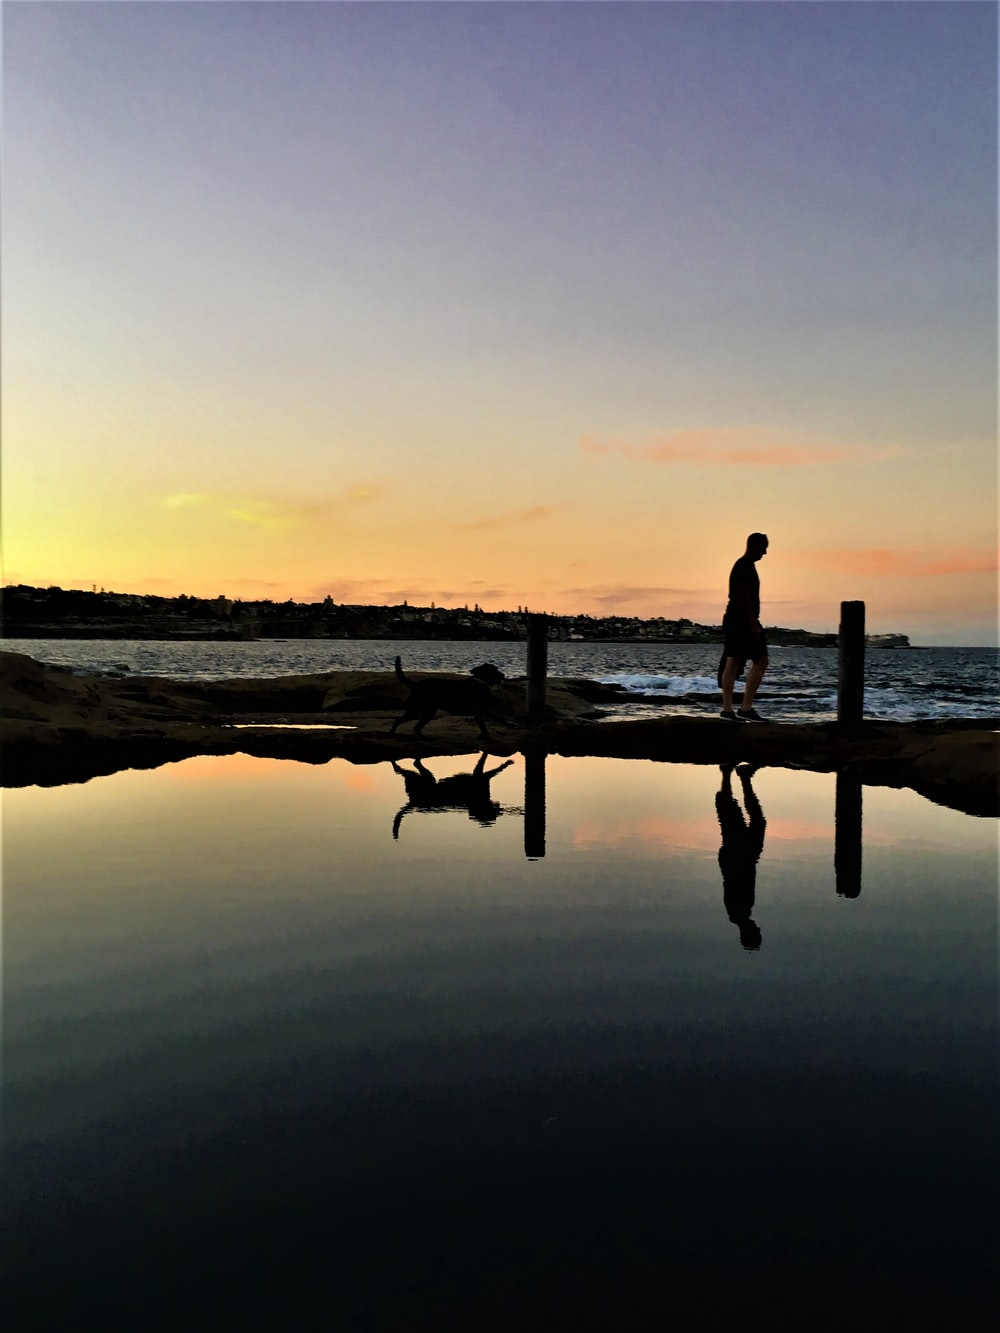 silhouette photography of person and dog beside body of water